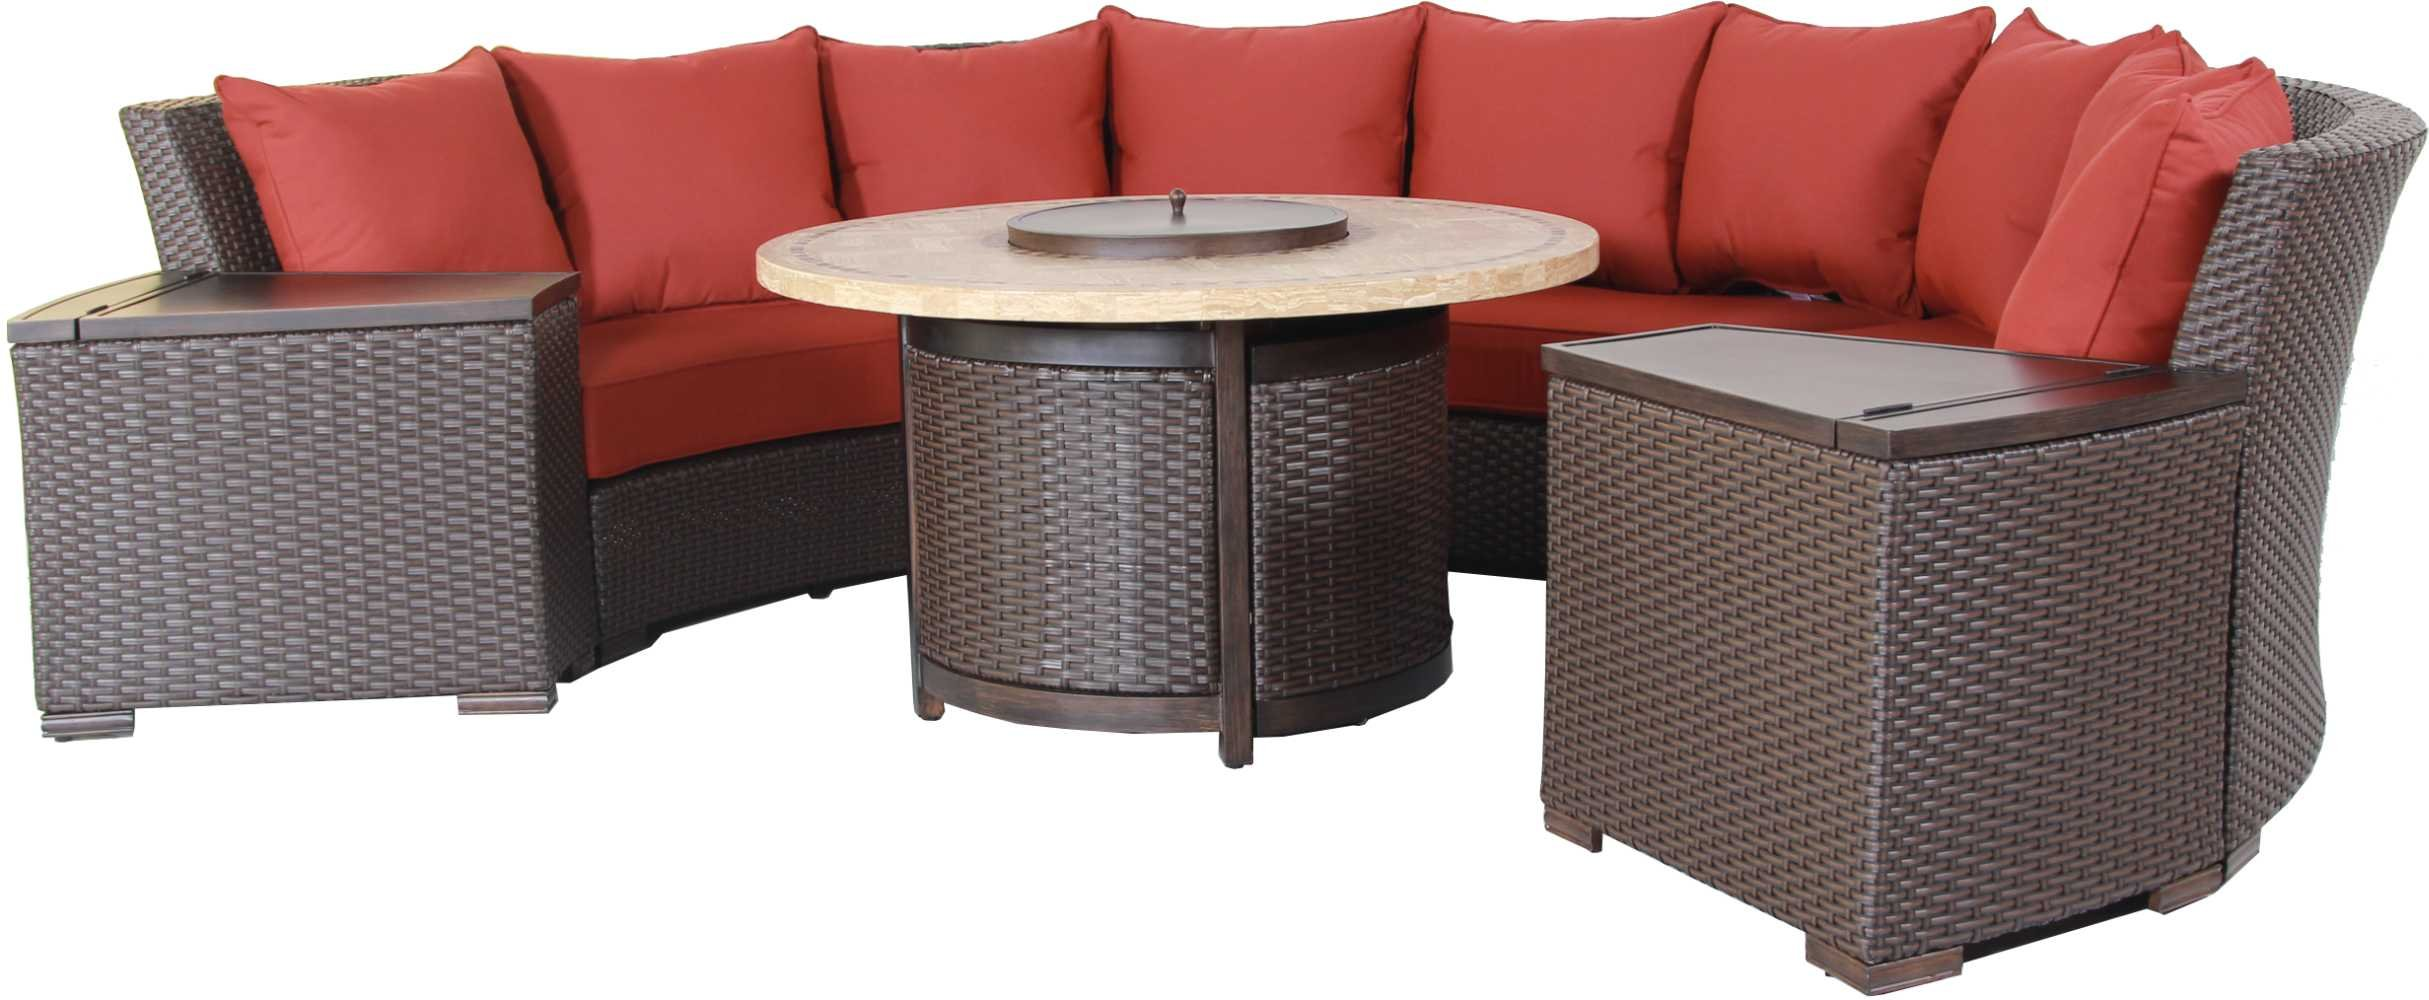 Bermuda 6-Piece Circular Sofa Set (Canvas Spa)